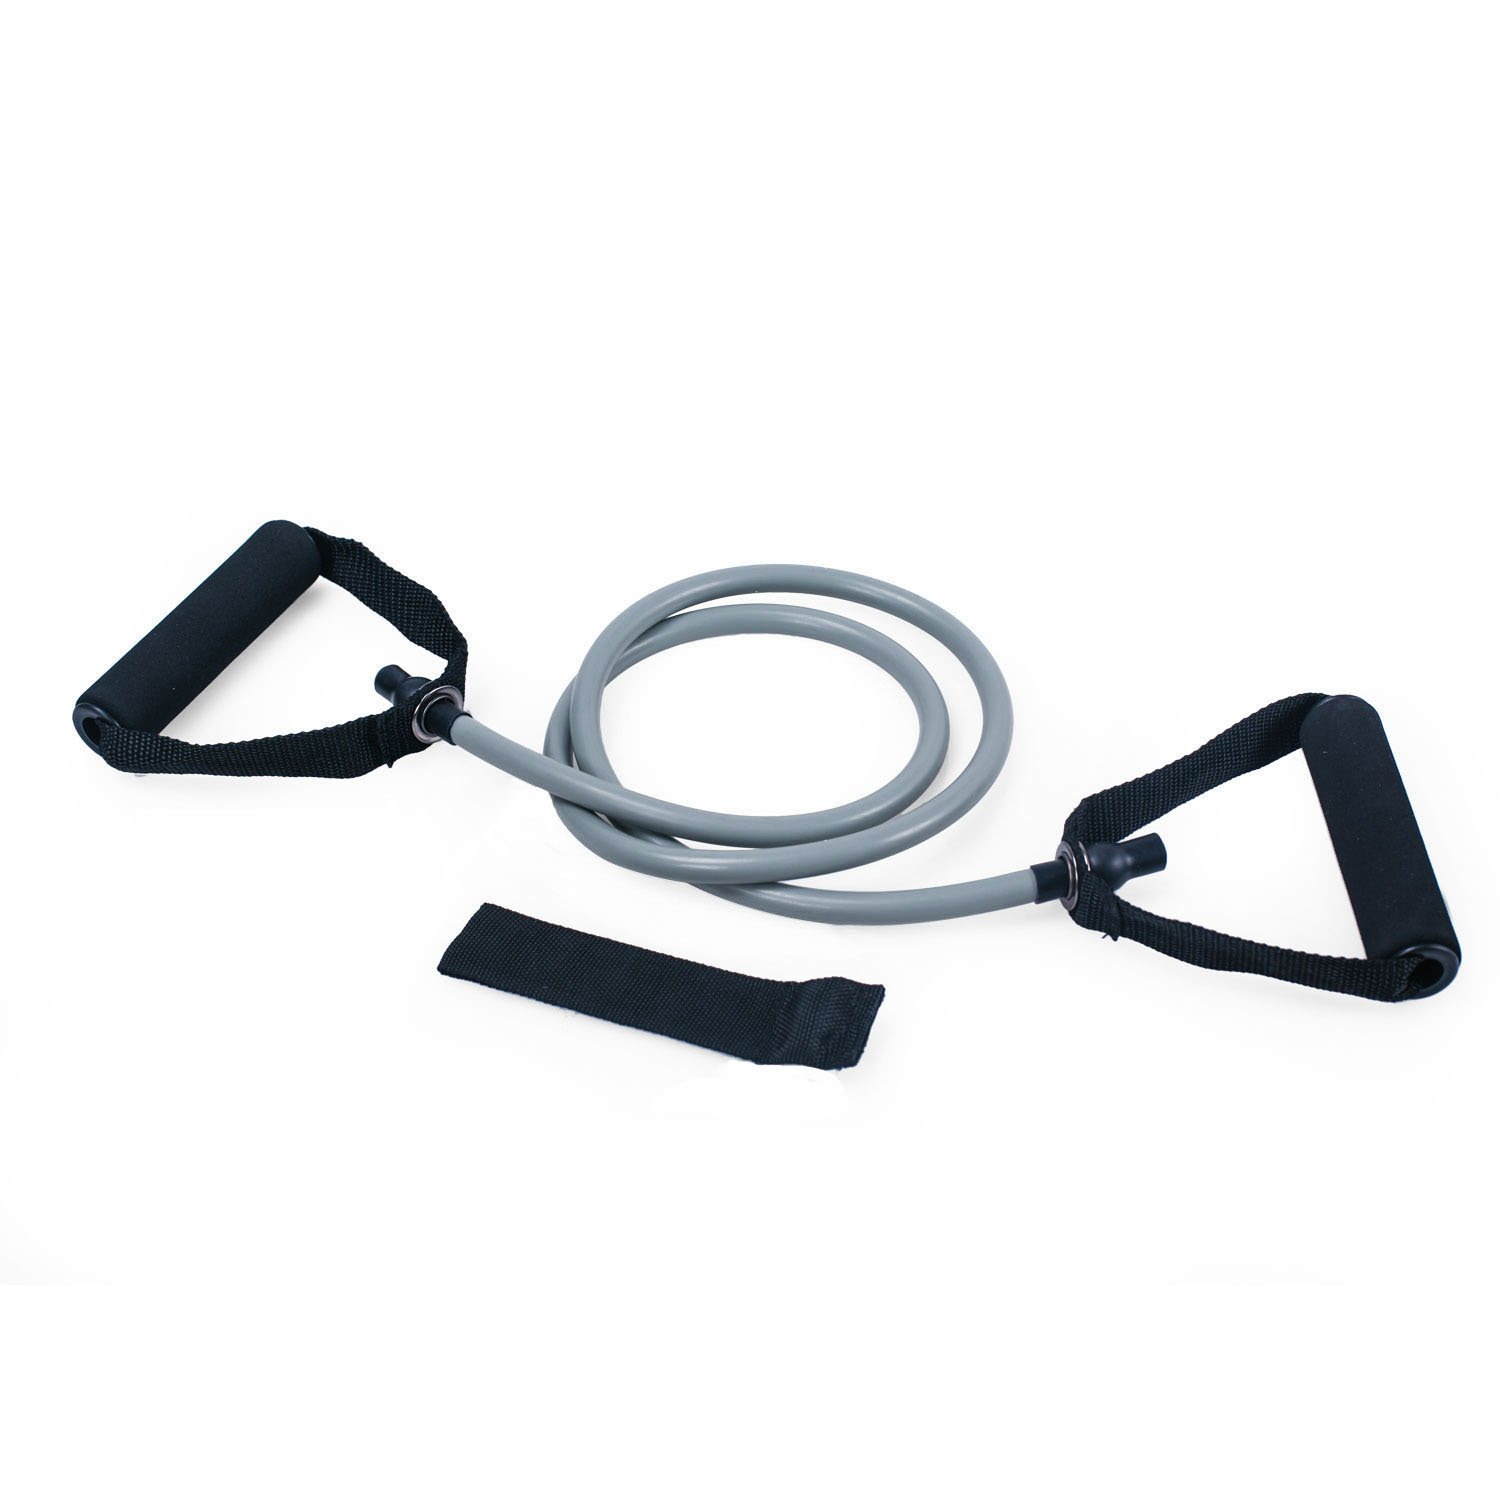 Adeco Single Resistance Band - Door Anchor and Starter Guide, gray by Adeco